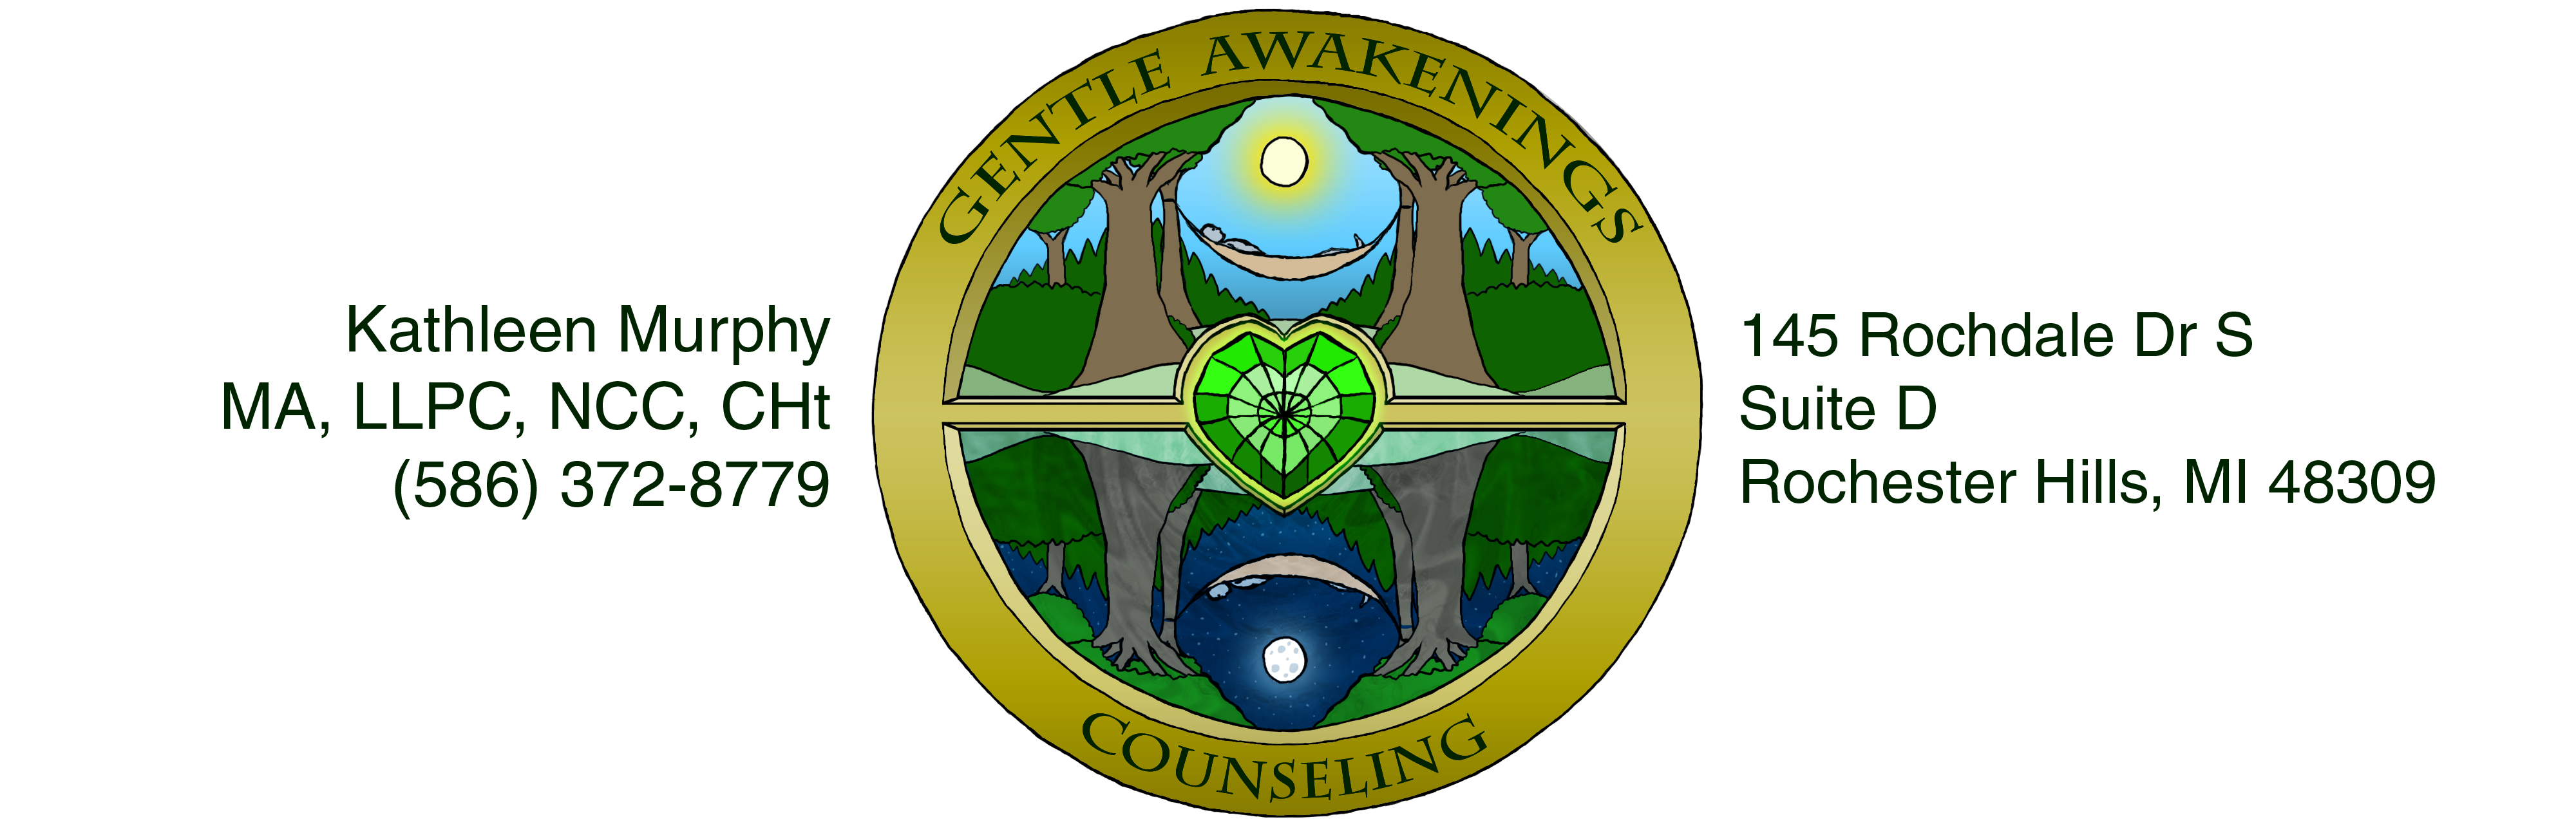 Gentle Awakenings Counseling | Emerald Dream Hypnosis | Rochester Hills Michigan